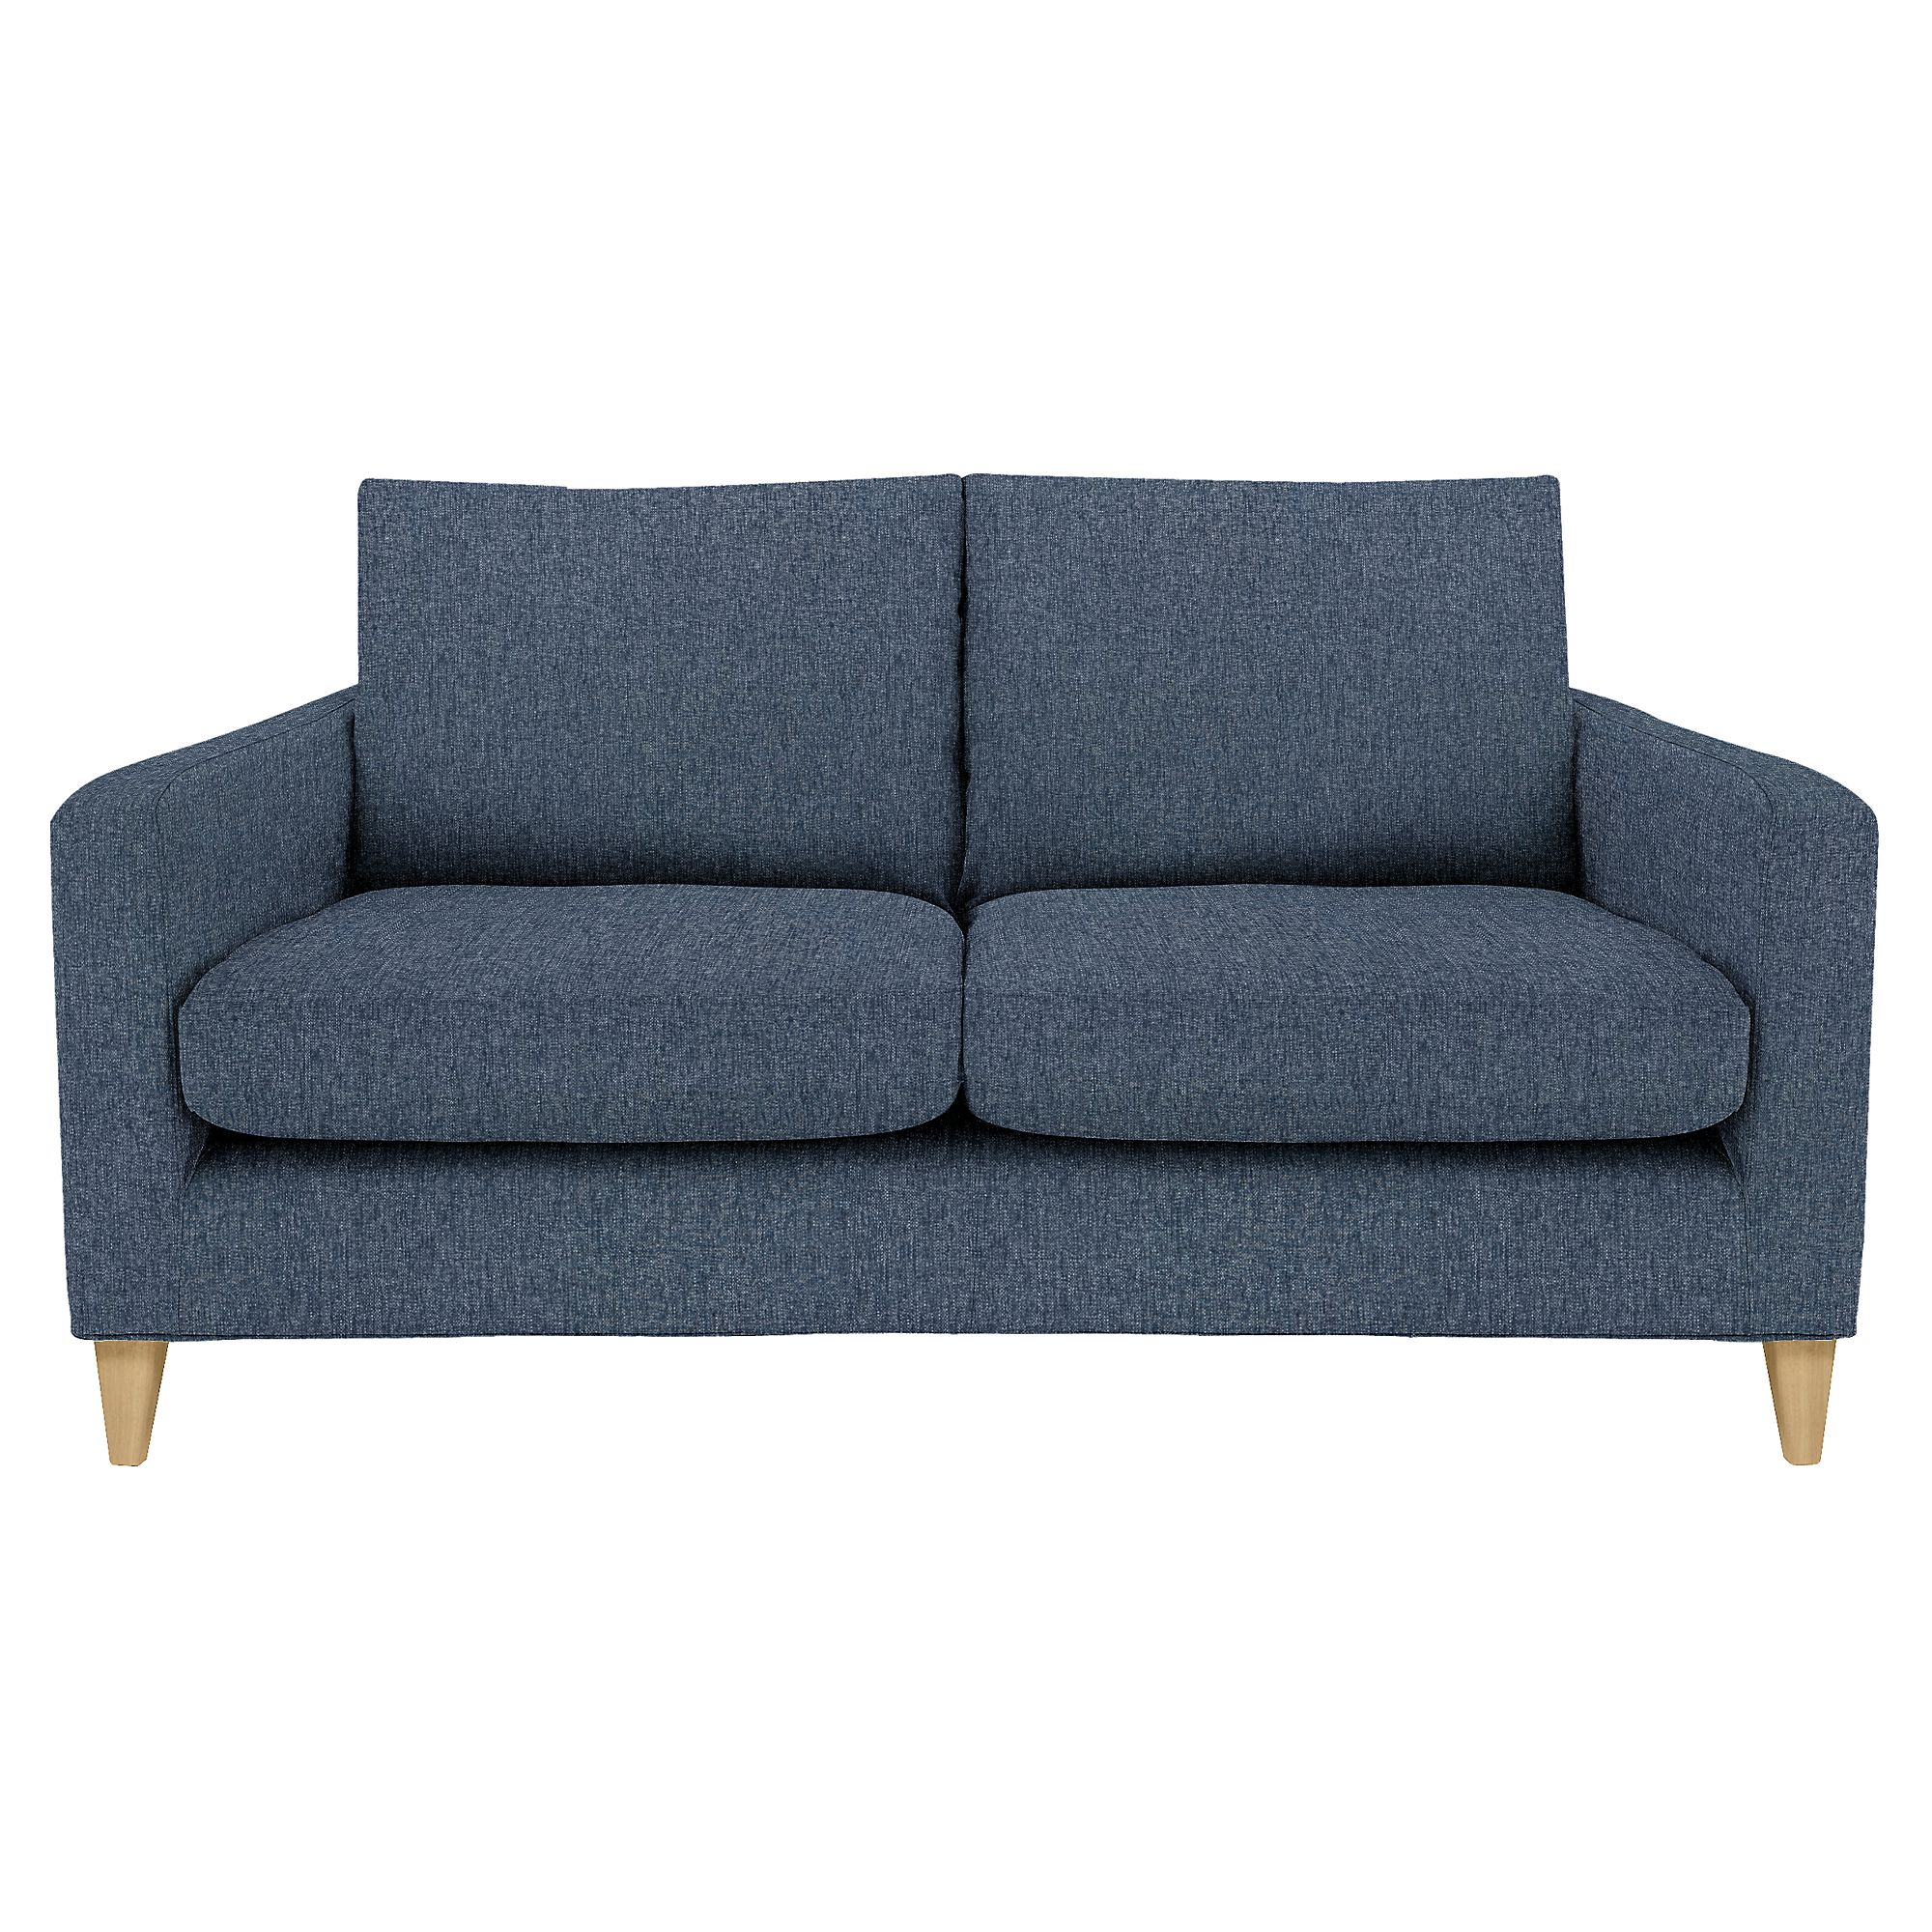 John Lewis Bailey 2 Seater Sofa, Navy